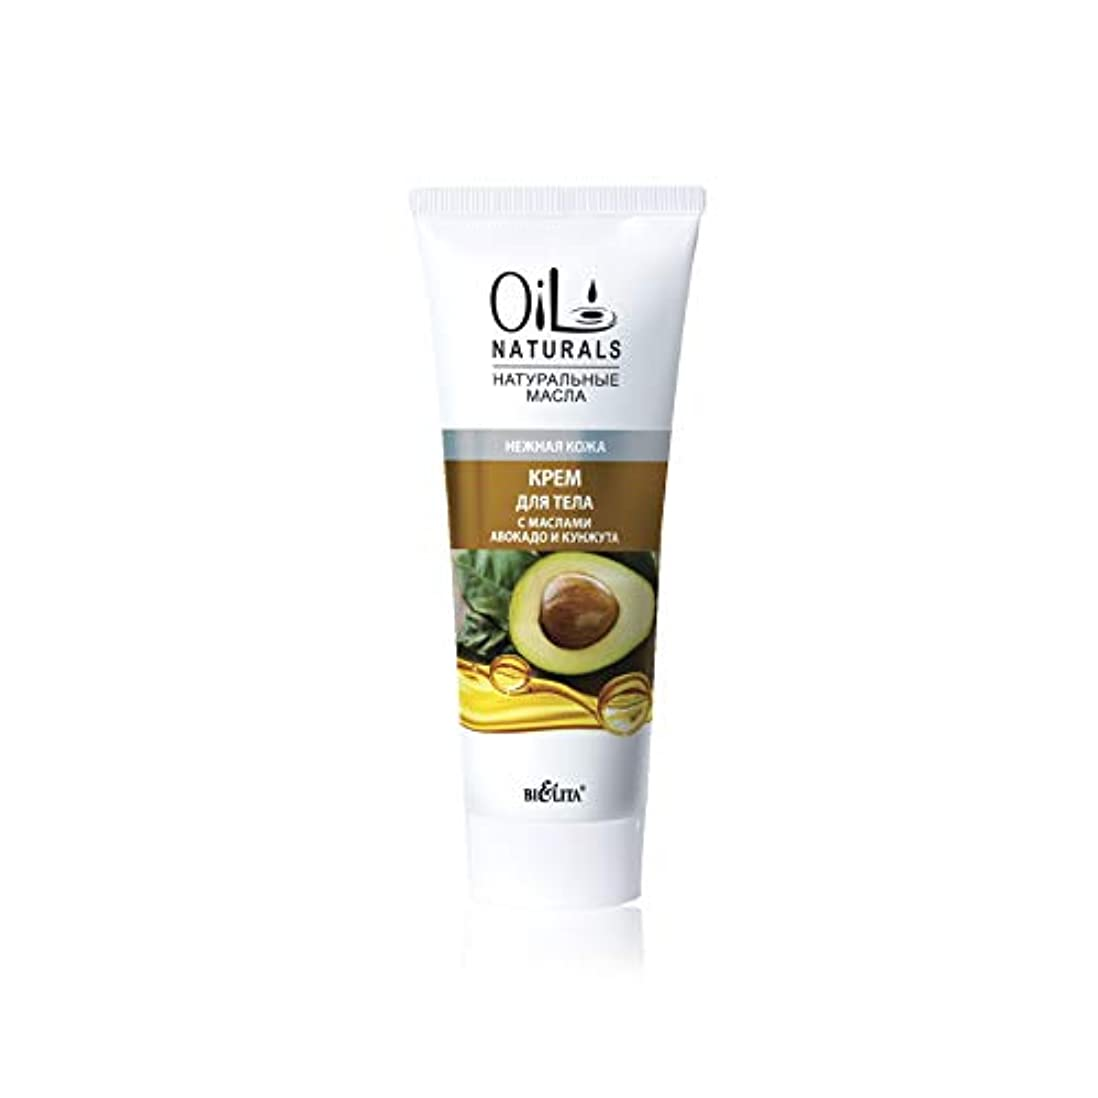 の前で期待する方法論Bielita & Vitex | Oil Naturals Line | Moisturizing Body Cream for Delicate Skin, 200 ml | Avocado Oil, Silk Proteins...